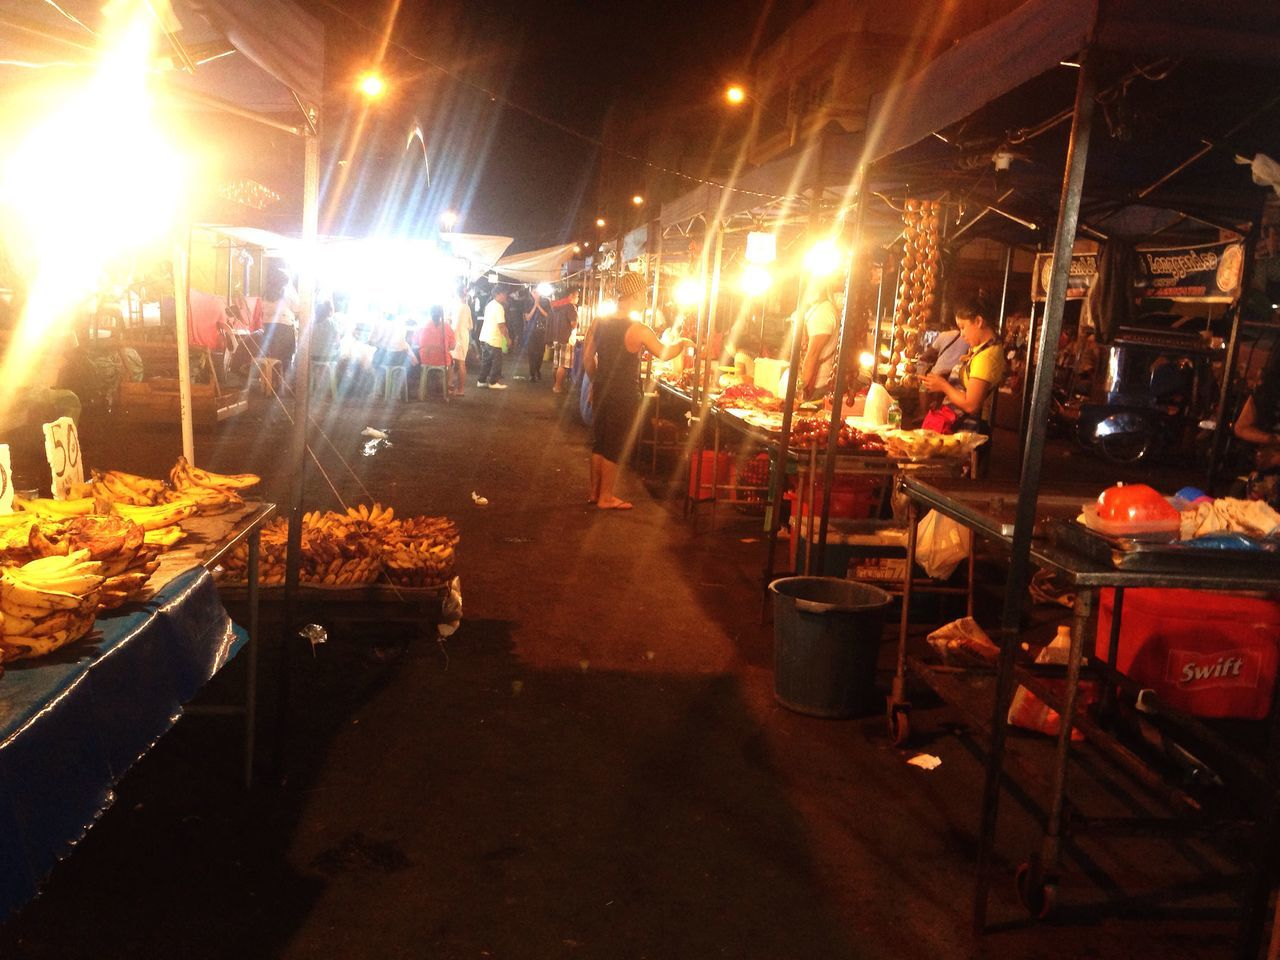 night, market, market stall, restaurant, illuminated, retail, food, food and drink, real people, large group of people, outdoors, men, freshness, city, people